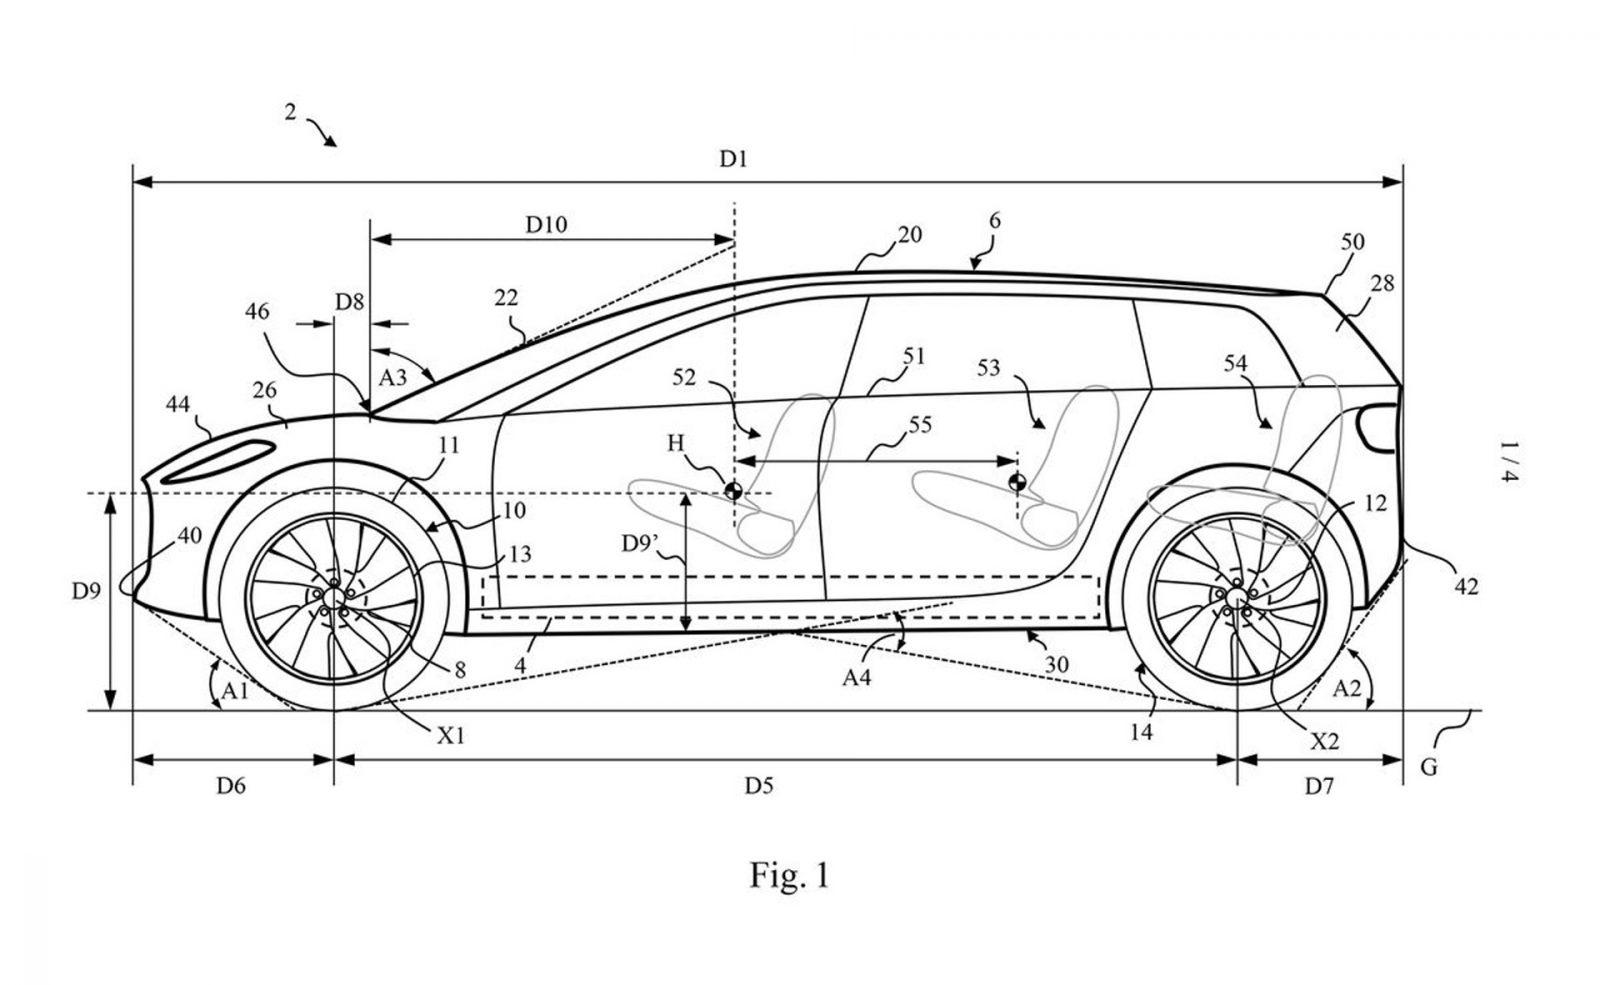 Dyson electric car would have had 600-mile range, founder claims